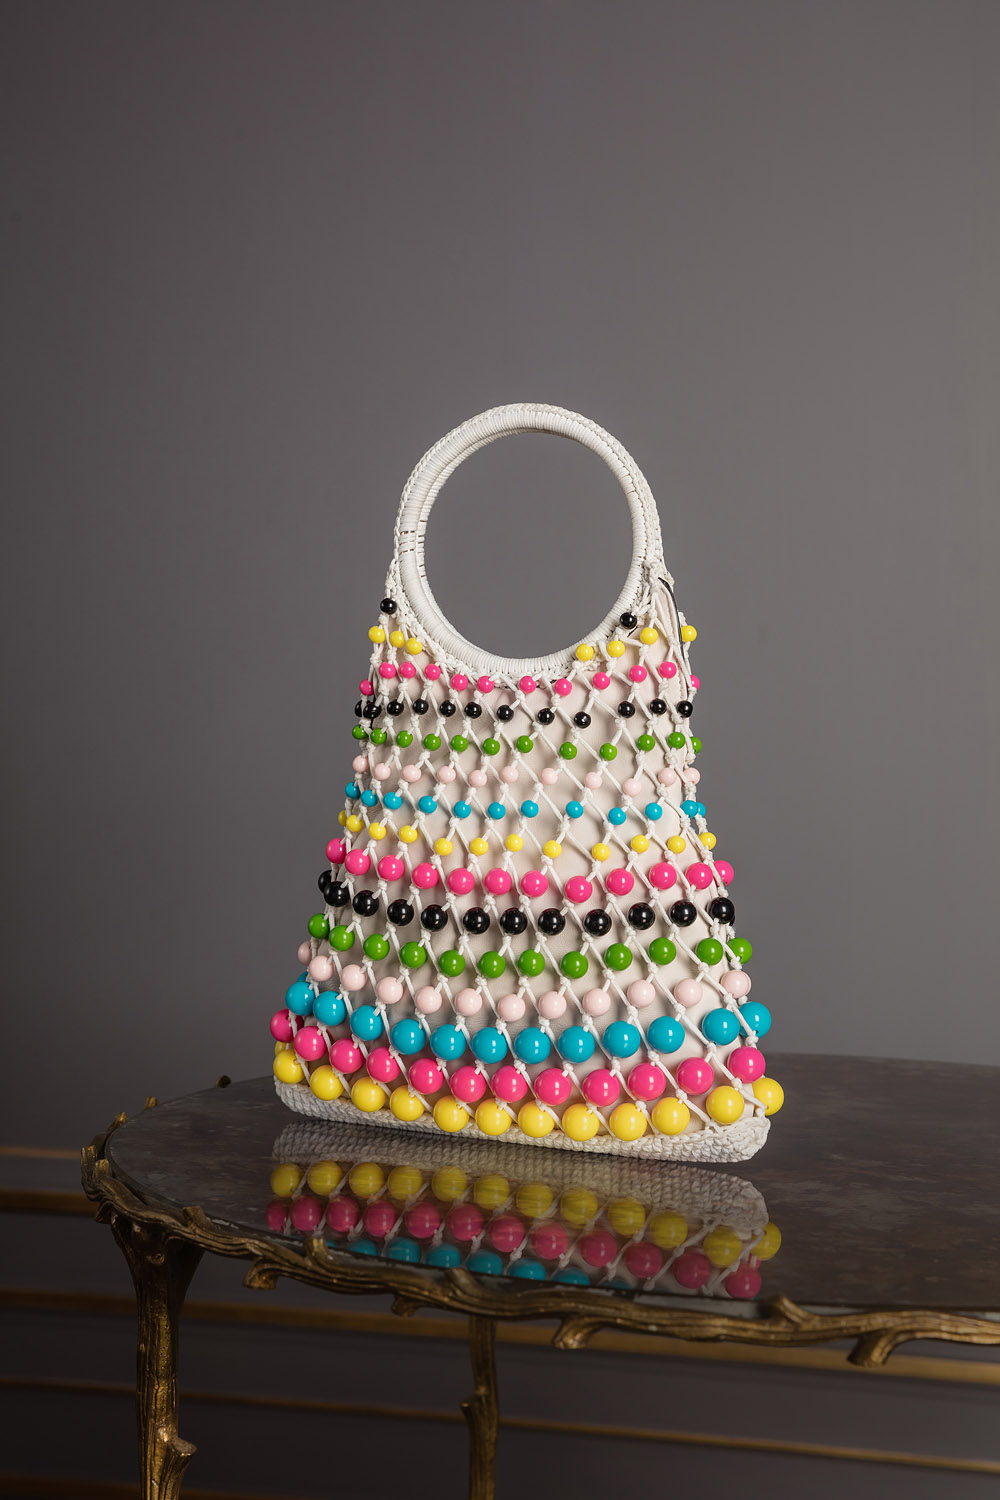 Netted bag decorated with multicolored beads and round handles